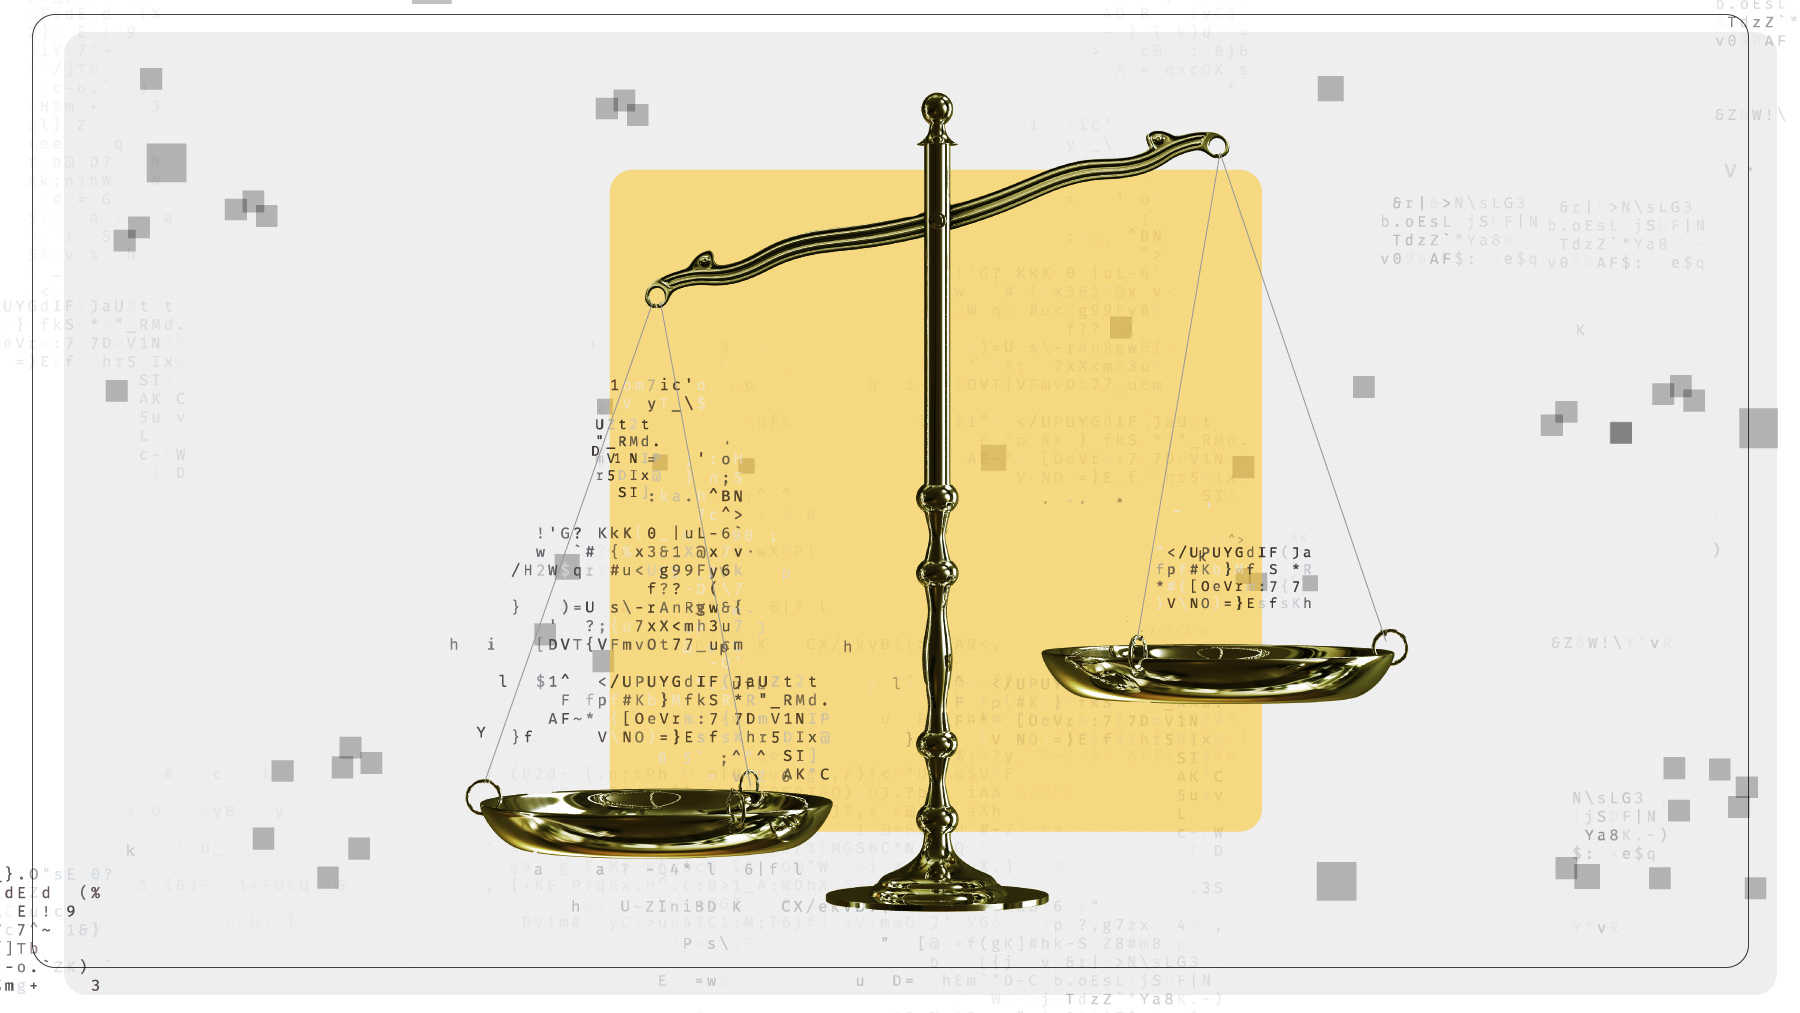 An illustration of old-fashioned balance scales weighing data in their pans.